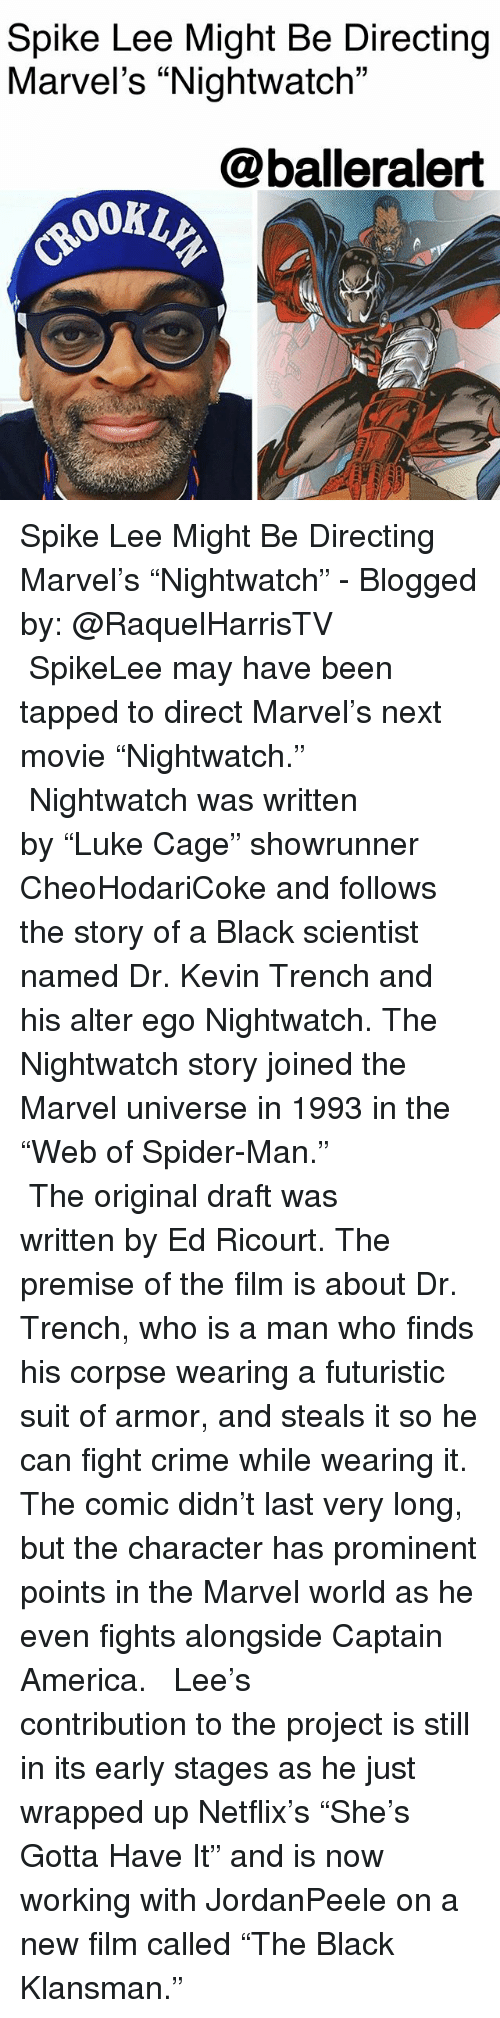 """Black Scientist: Spike Lee Might Be Directing  Marvel's """"Nightwatch""""  @balleralert Spike Lee Might Be Directing Marvel's """"Nightwatch"""" - Blogged by: @RaquelHarrisTV ⠀⠀⠀⠀⠀⠀⠀⠀⠀ ⠀⠀⠀⠀⠀⠀⠀⠀⠀ SpikeLee may have been tapped to direct Marvel's next movie """"Nightwatch."""" ⠀⠀⠀⠀⠀⠀⠀⠀⠀ ⠀⠀⠀⠀⠀⠀⠀⠀⠀ Nightwatch was written by """"Luke Cage"""" showrunner CheoHodariCoke and follows the story of a Black scientist named Dr. Kevin Trench and his alter ego Nightwatch. The Nightwatch story joined the Marvel universe in 1993 in the """"Web of Spider-Man."""" ⠀⠀⠀⠀⠀⠀⠀⠀⠀ ⠀⠀⠀⠀⠀⠀⠀⠀⠀ The original draft was written by Ed Ricourt. The premise of the film is about Dr. Trench, who is a man who finds his corpse wearing a futuristic suit of armor, and steals it so he can fight crime while wearing it. The comic didn't last very long, but the character has prominent points in the Marvel world as he even fights alongside Captain America. ⠀⠀⠀⠀⠀⠀⠀⠀⠀ ⠀⠀⠀⠀⠀⠀⠀⠀⠀ Lee's contribution to the project is still in its early stages as he just wrapped up Netflix's """"She's Gotta Have It"""" and is now working with JordanPeele on a new film called """"The Black Klansman."""""""